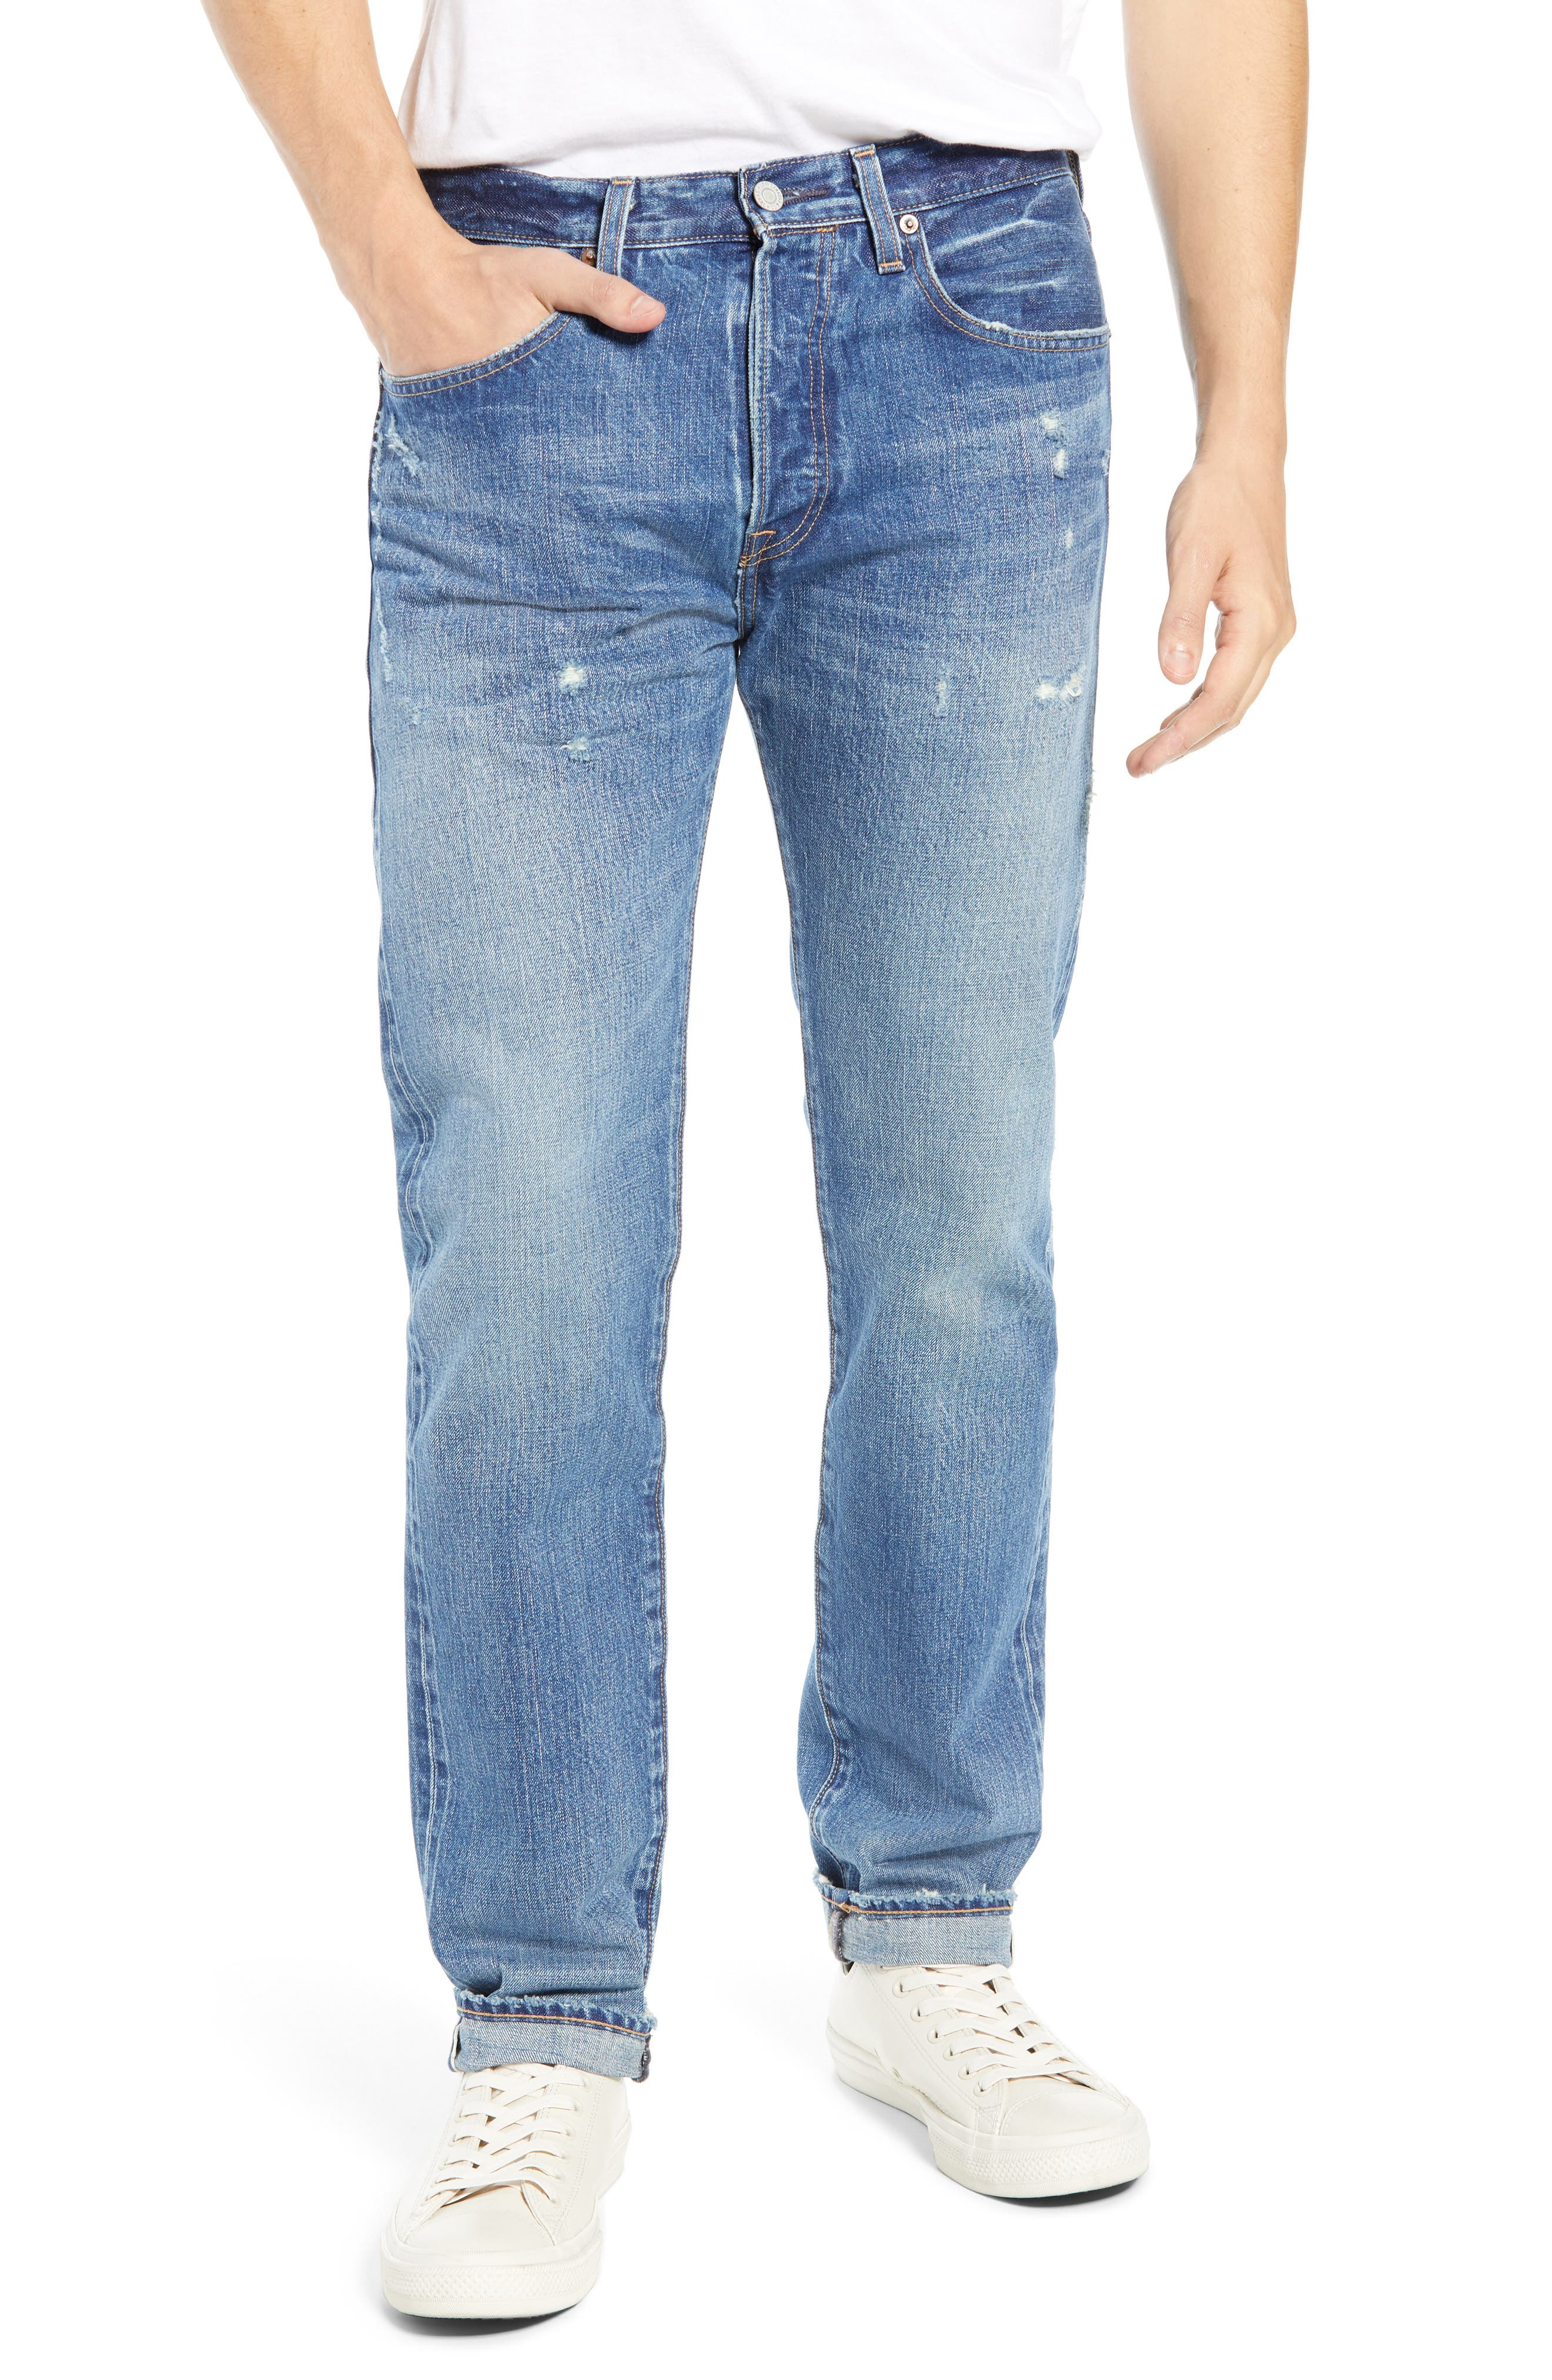 Levi's<sup>®</sup> Made & Crafted 501<sup>™</sup> Slim Fit Tapered Jeans,                         Main,                         color, FOREVER